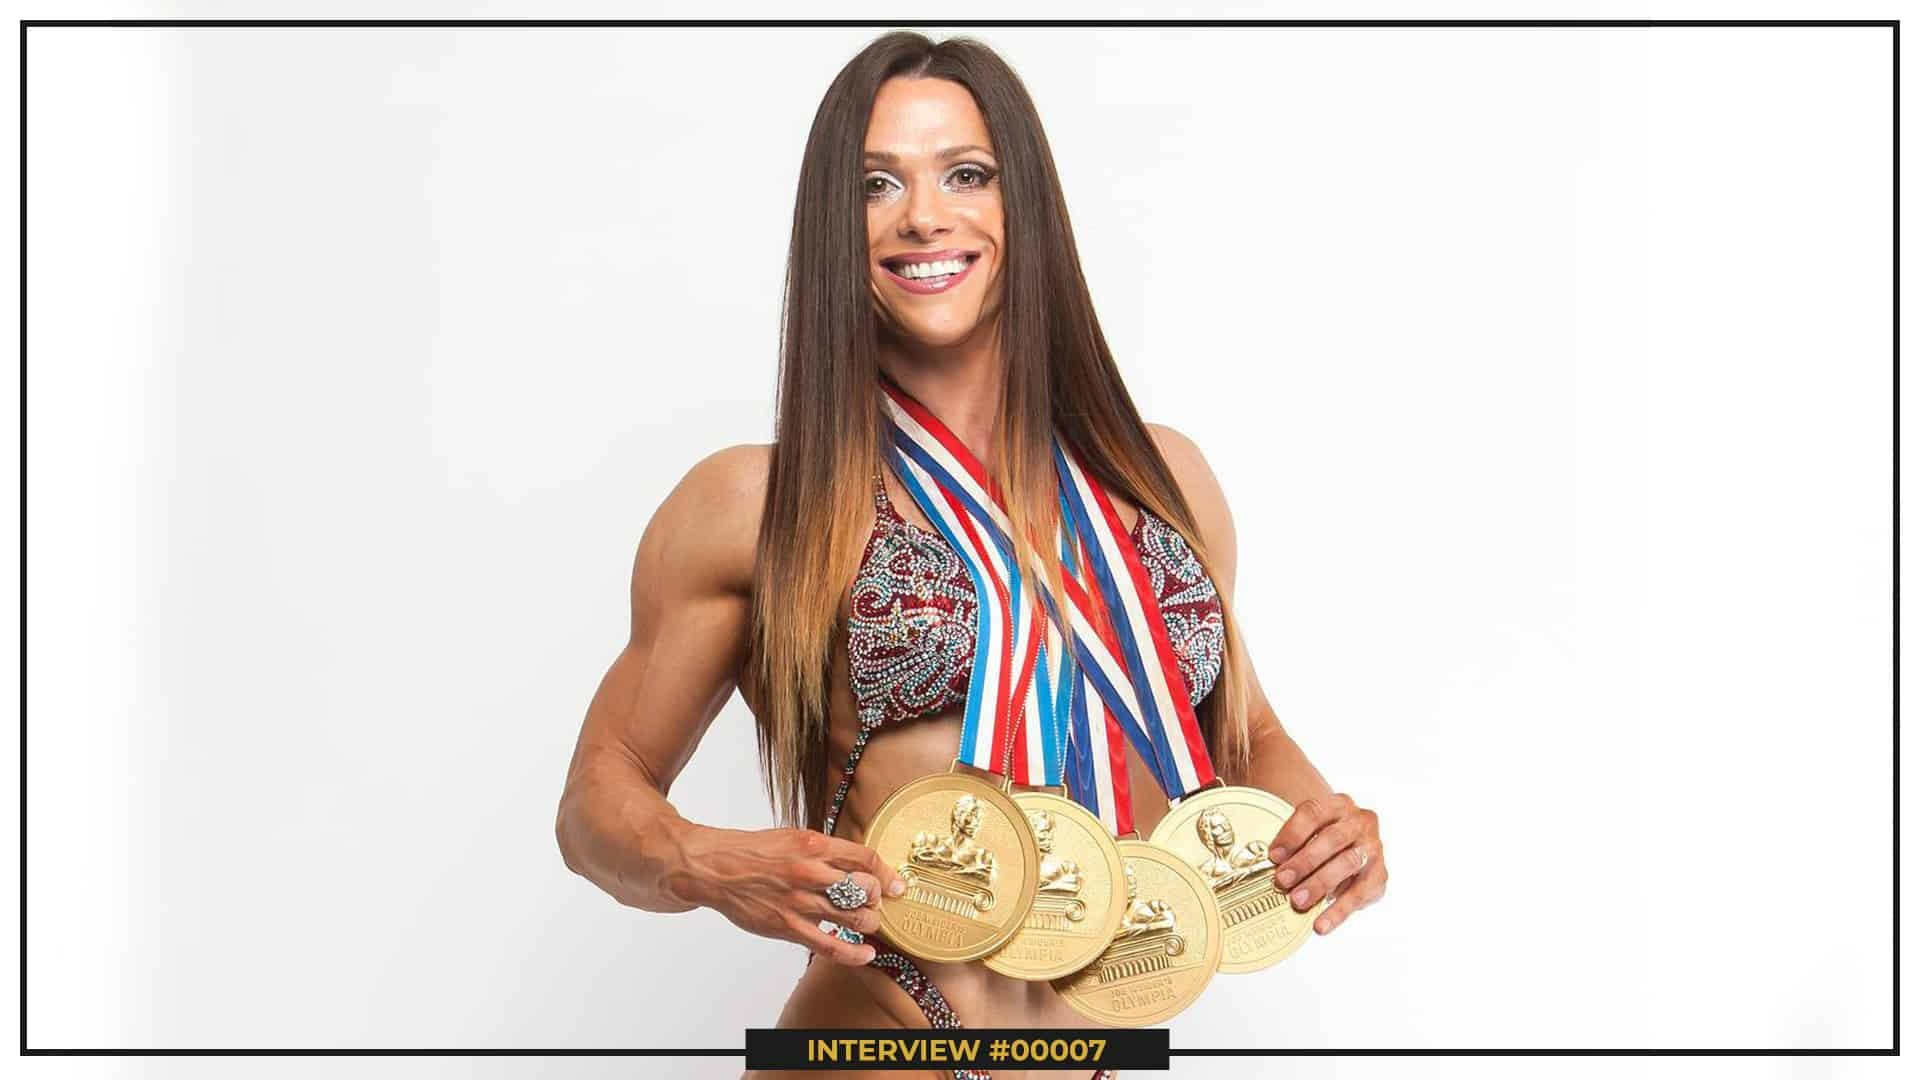 Oksana Grishina sstanding in front of the carema holding her four golden medals